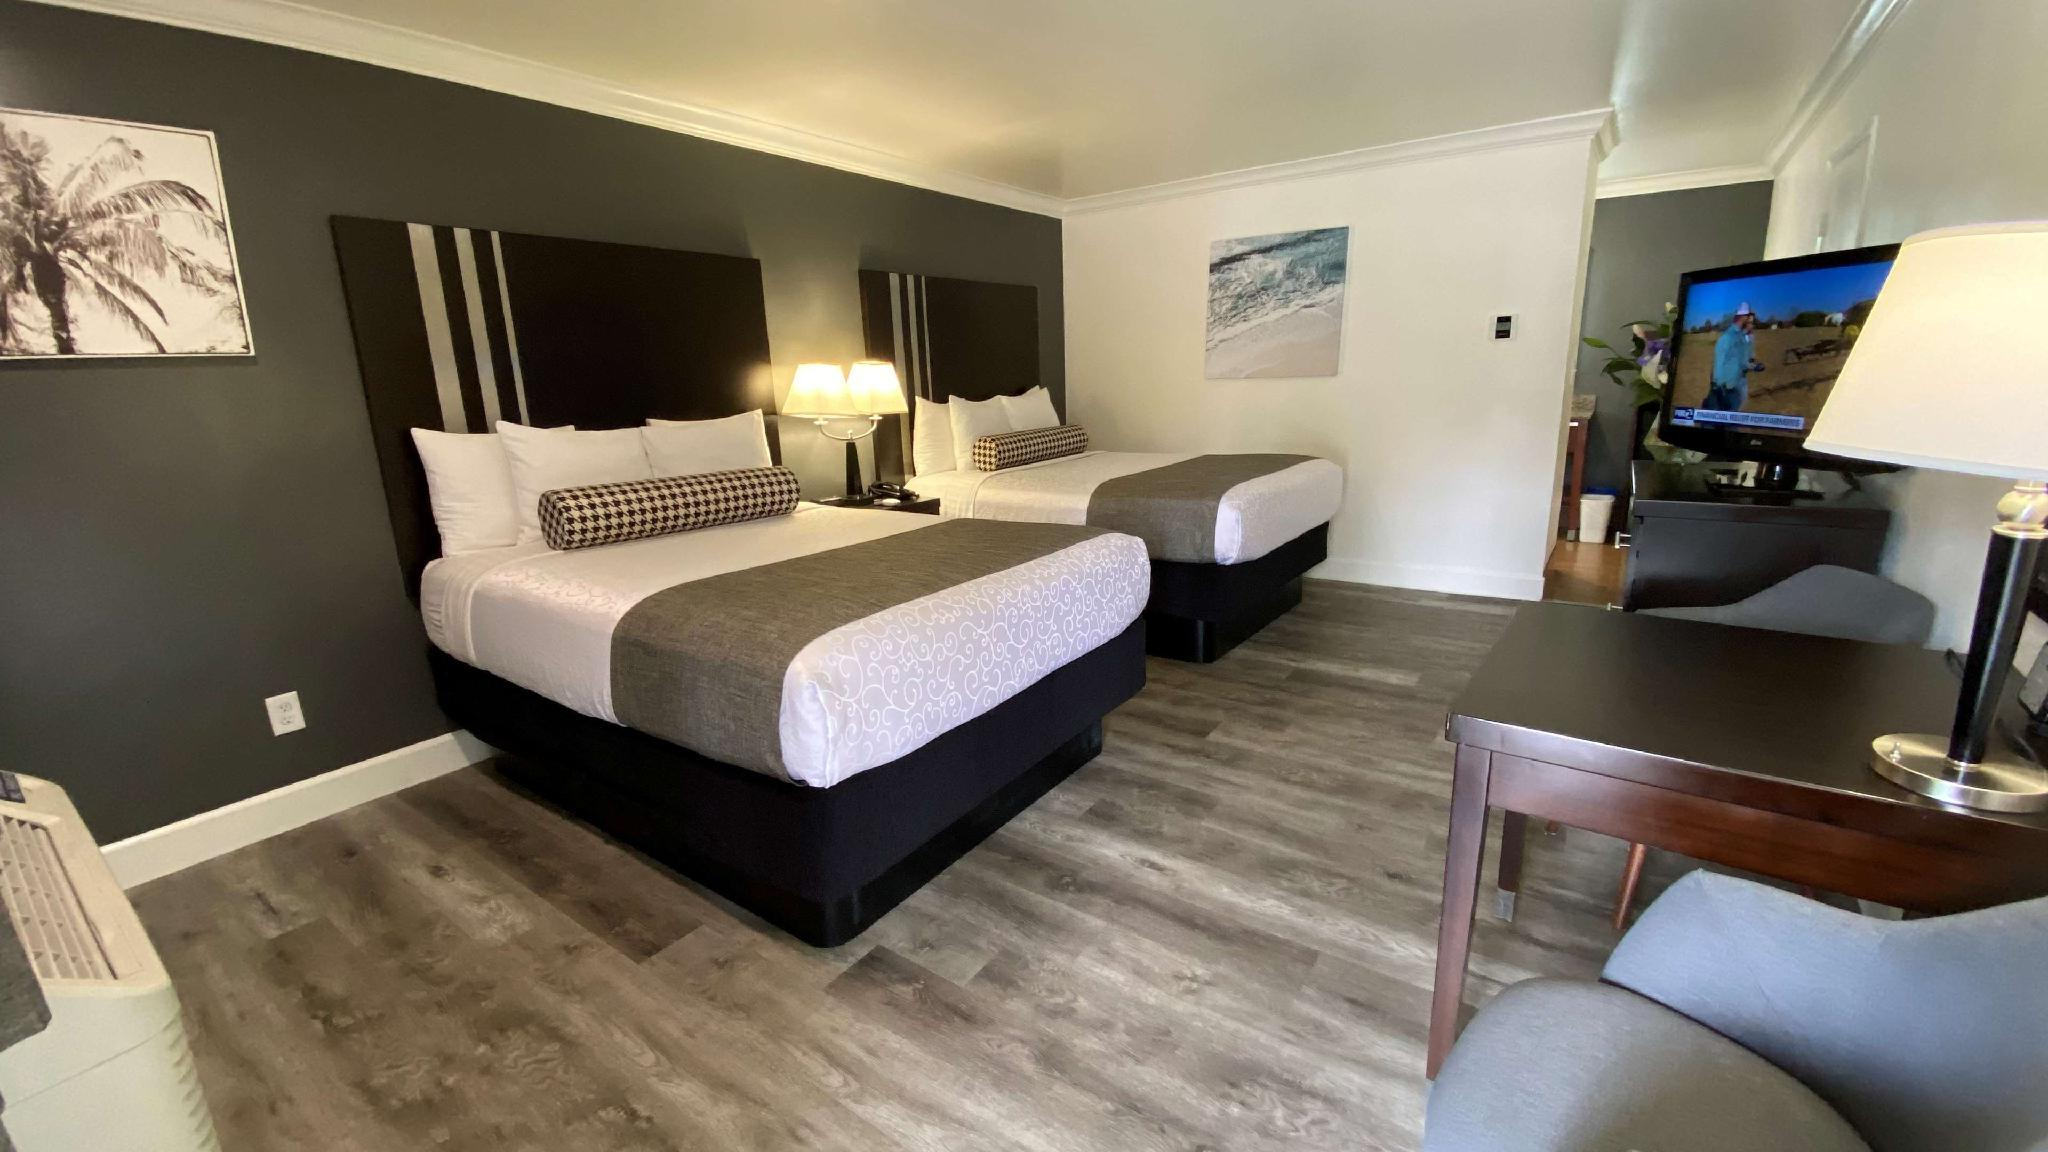 2 Queen Beds with Bathtub - Disabled Access, No Smoking